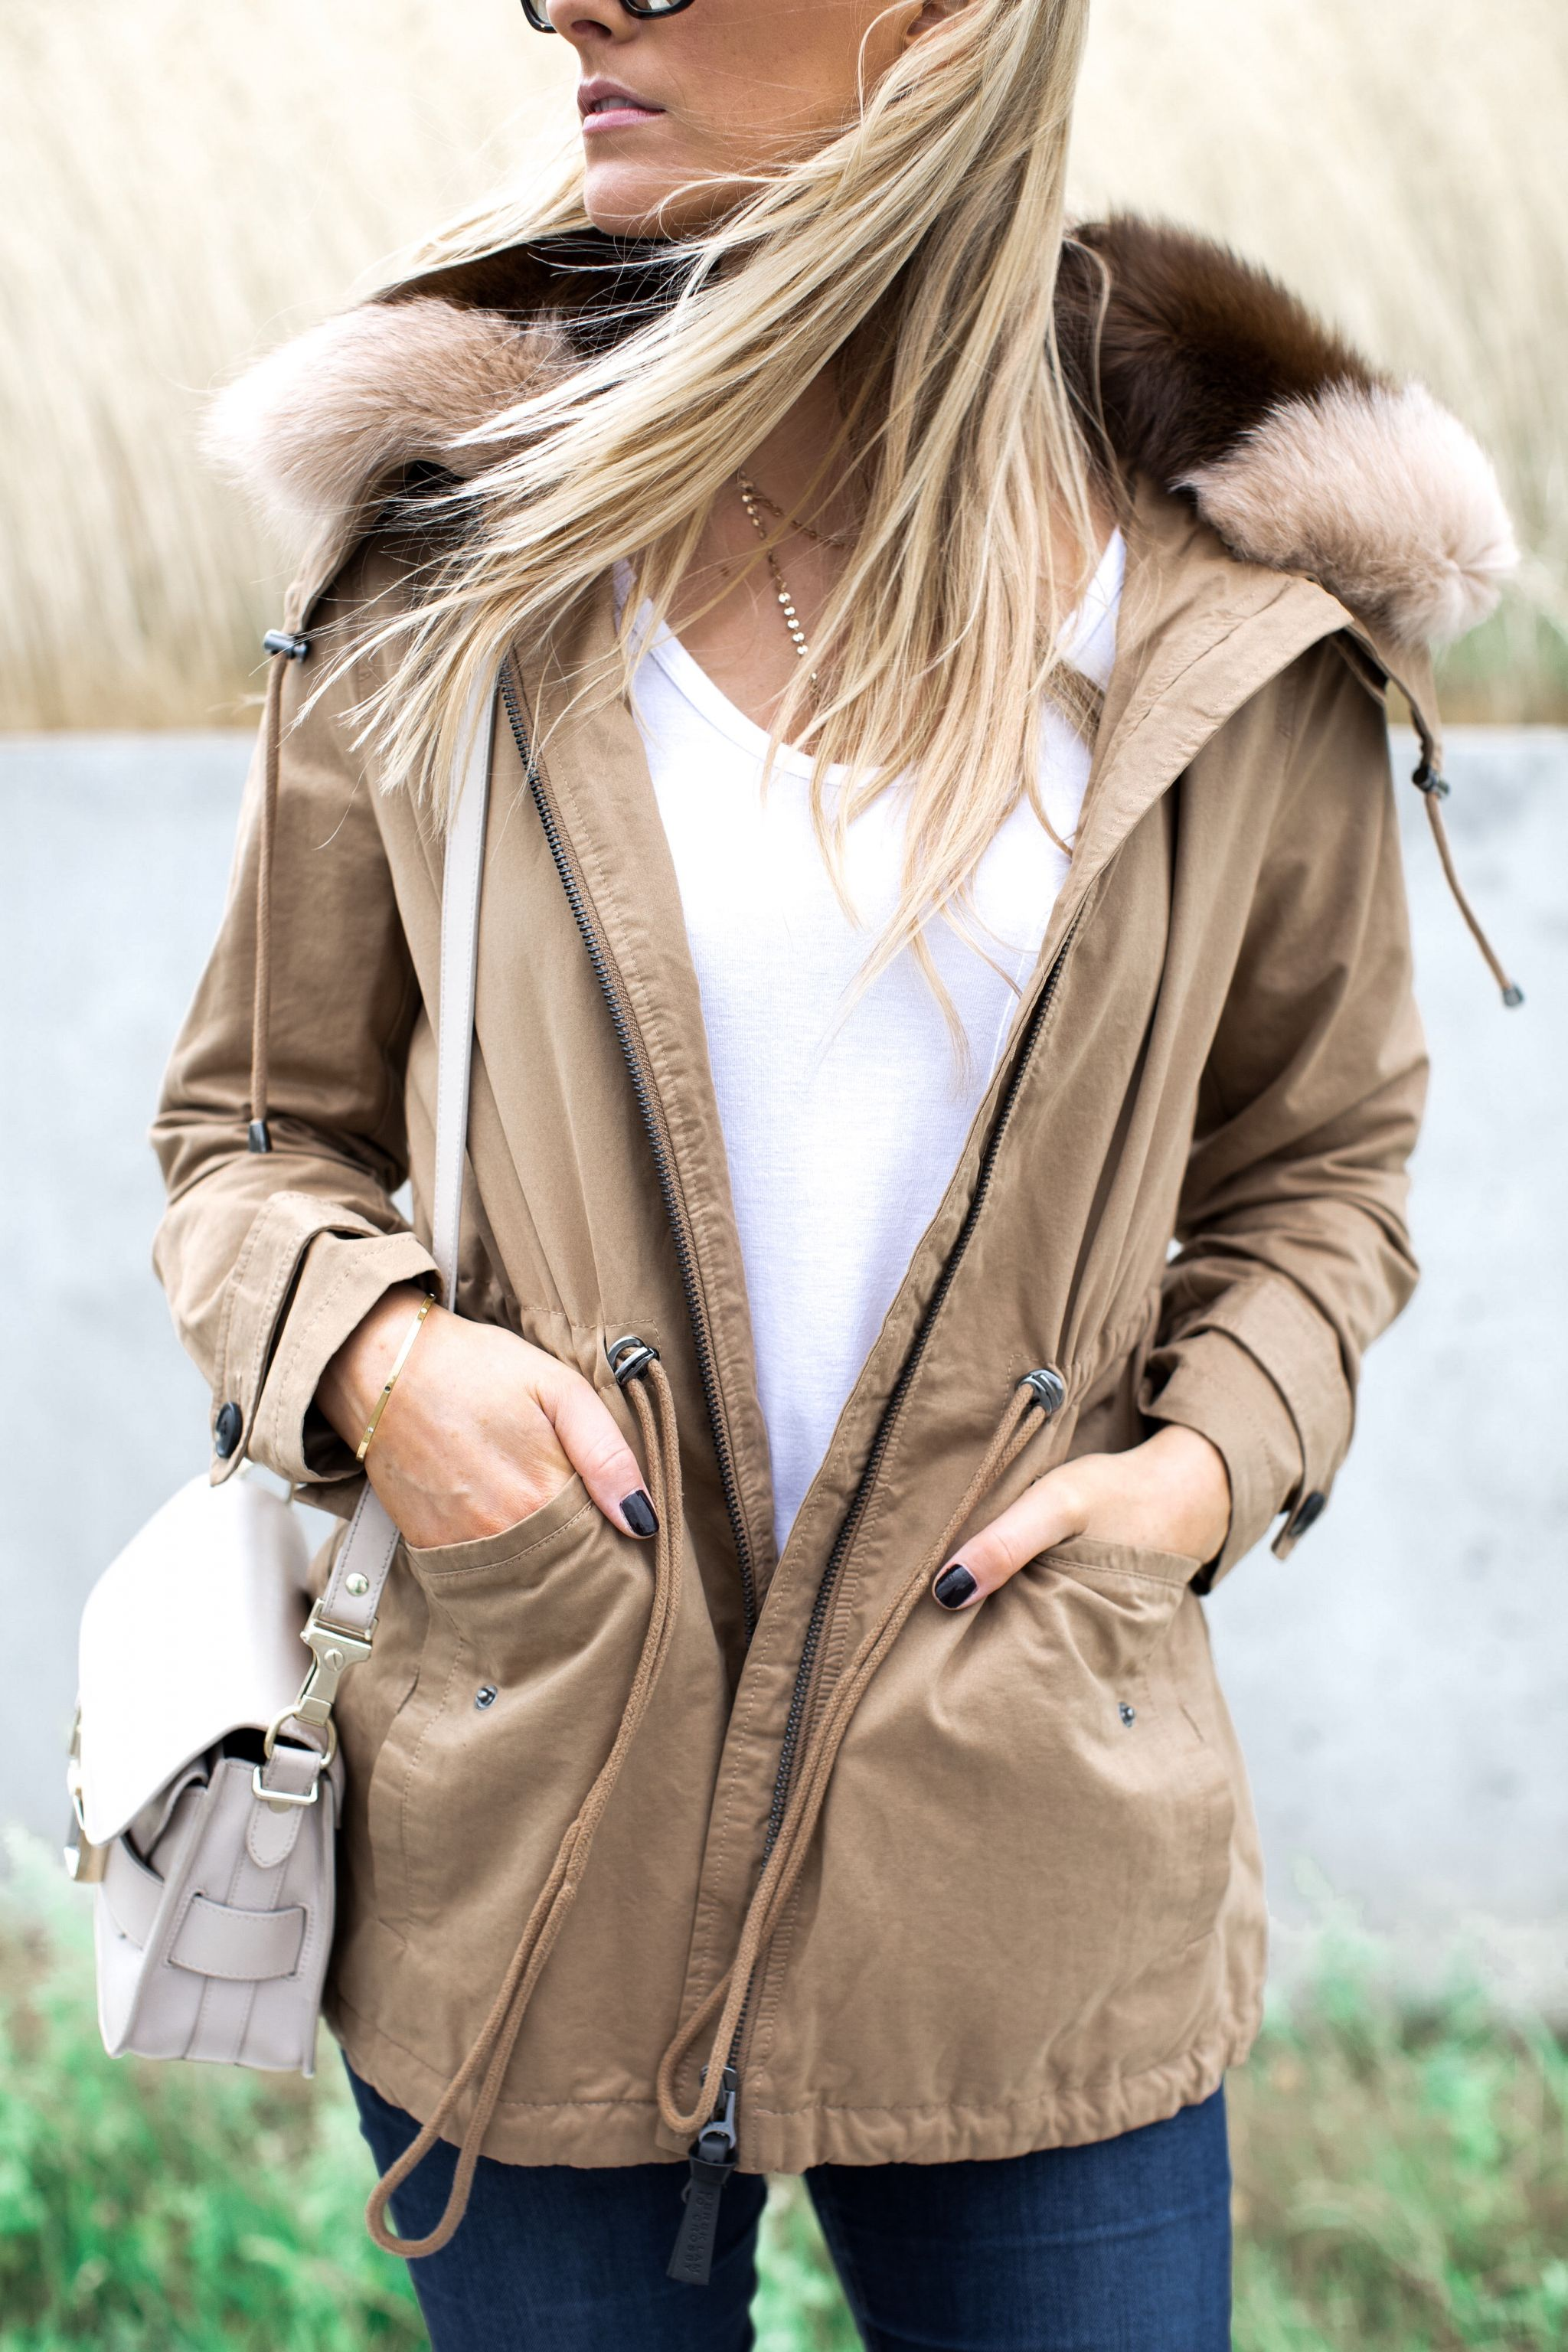 1 person, girl wearing tan jacket with fur collar